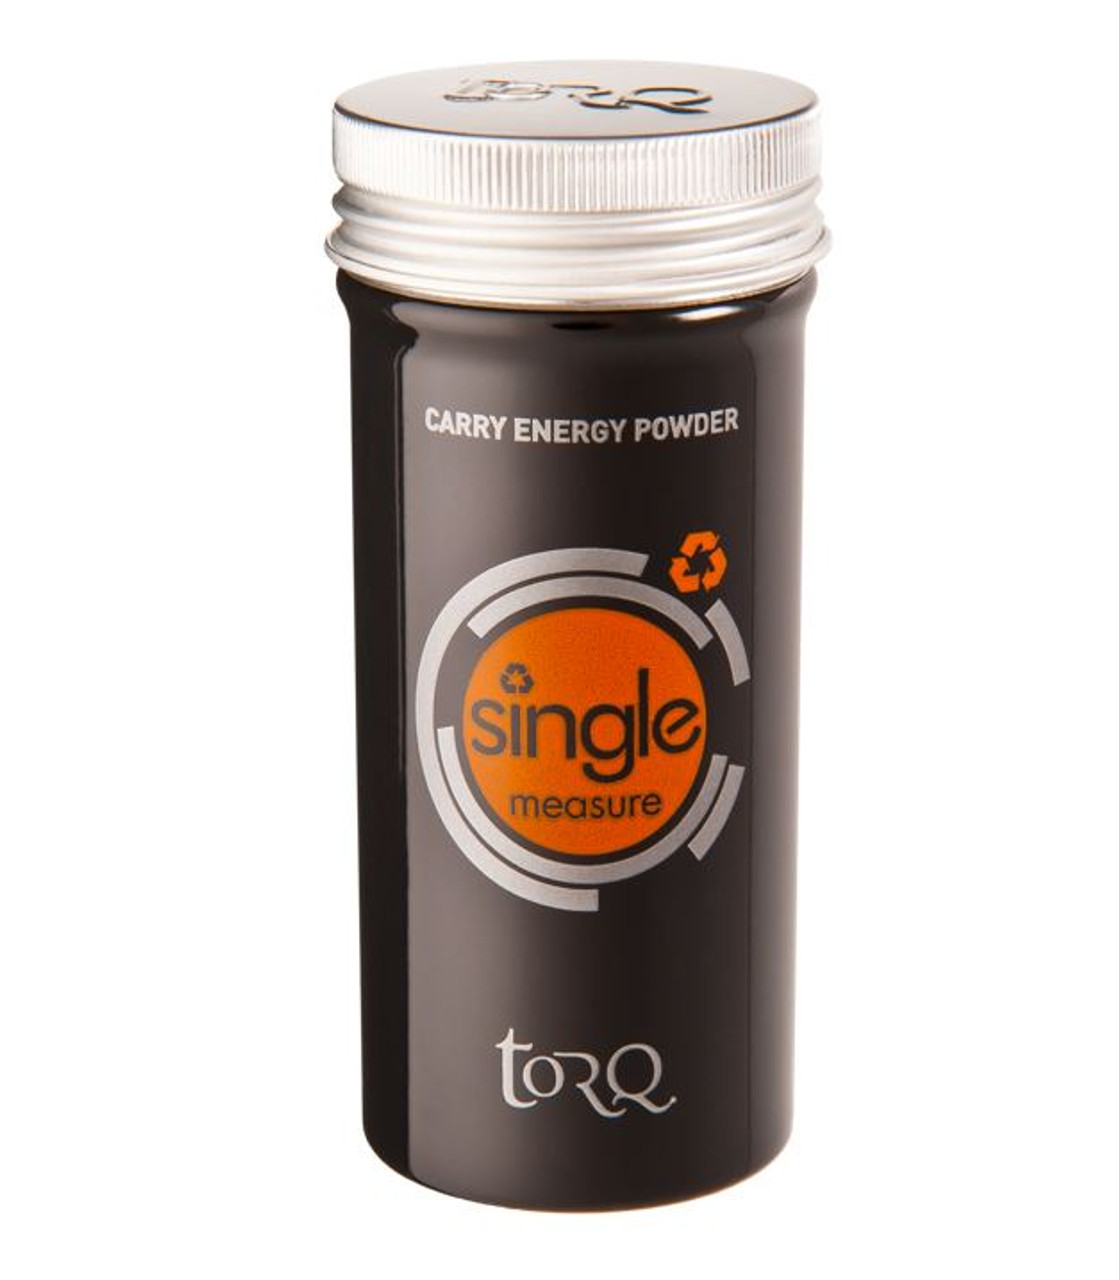 TORQ Single Measure Canister